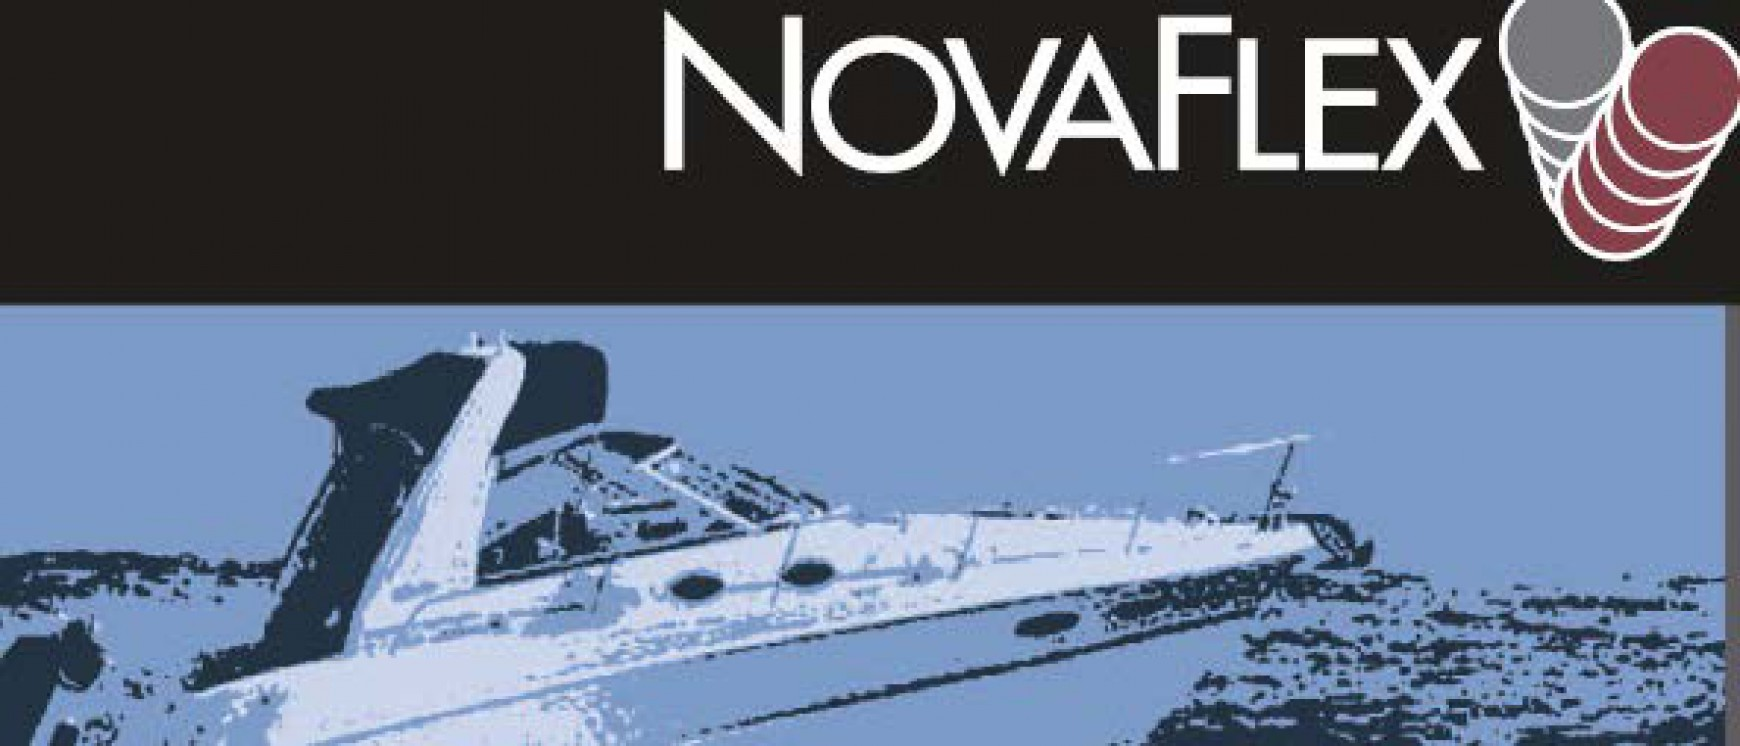 Keeping you afloat with NovaFlex